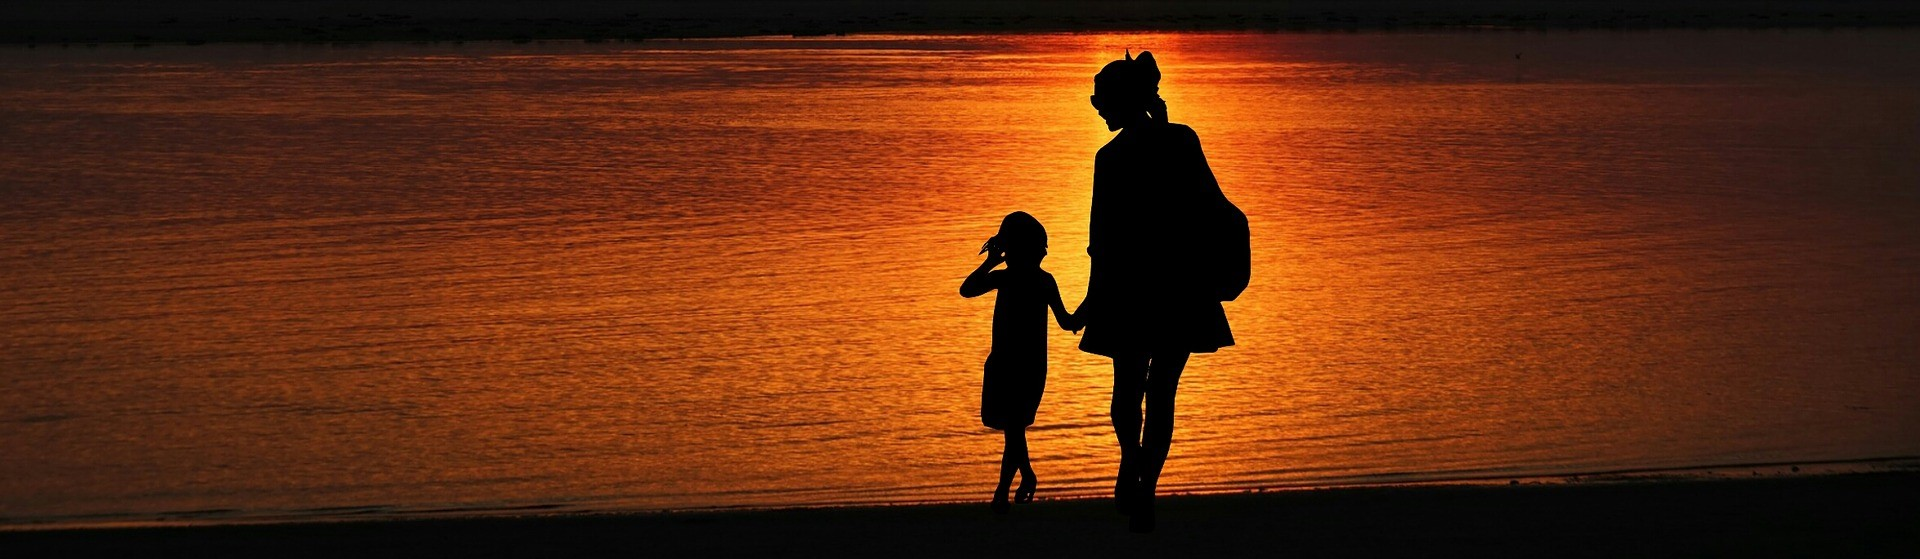 Mother and daughter under the Sunset - CarDonations4Cancer.org